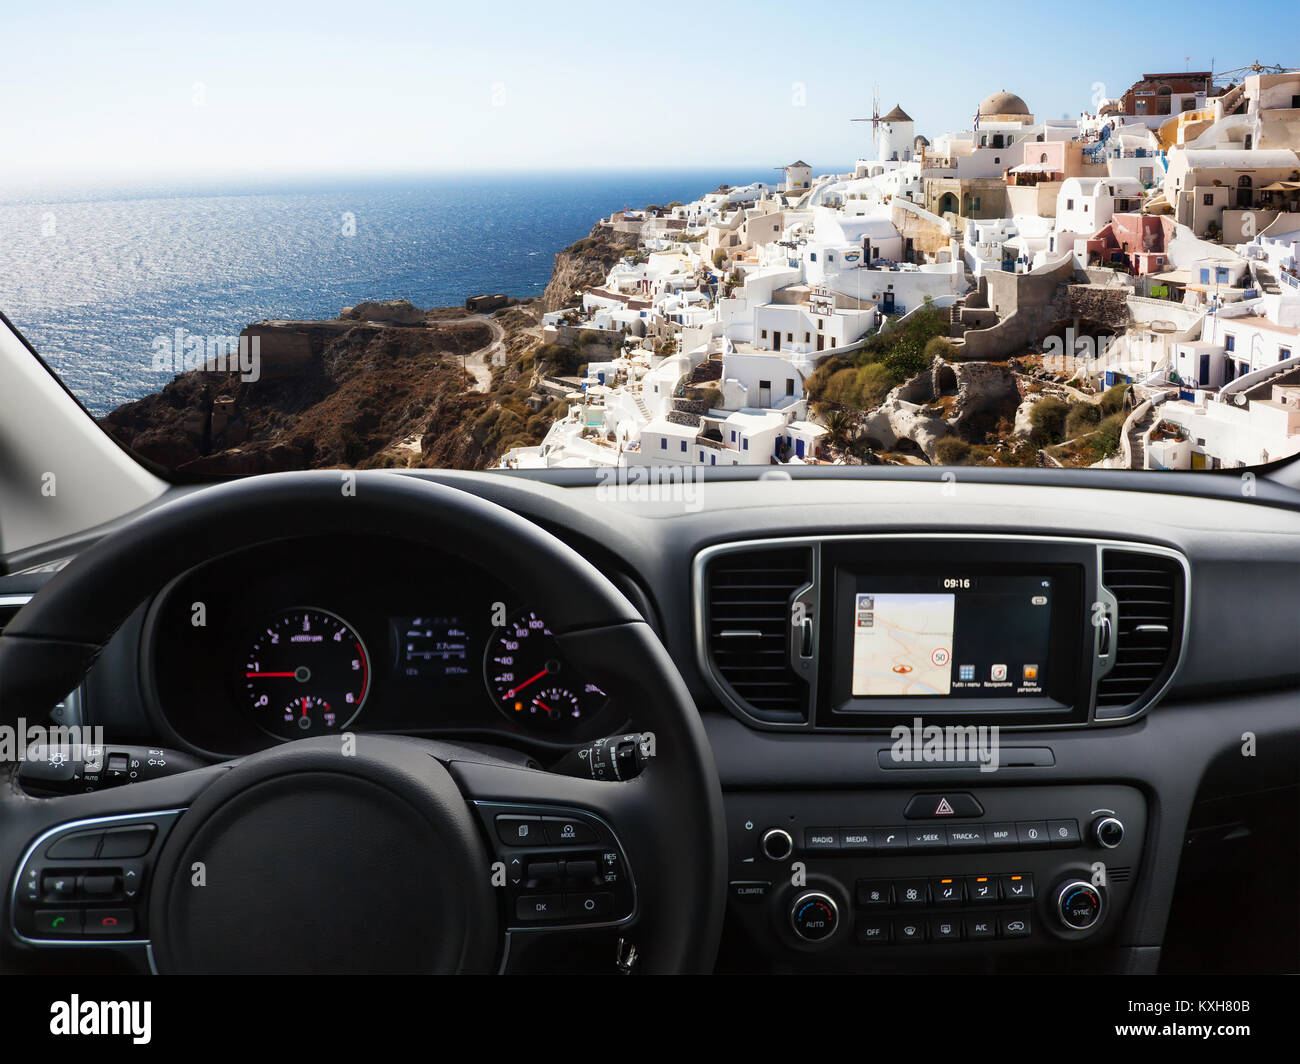 View of a car dashboard with a navigation unit traveling to Santorini Island. - Stock Image